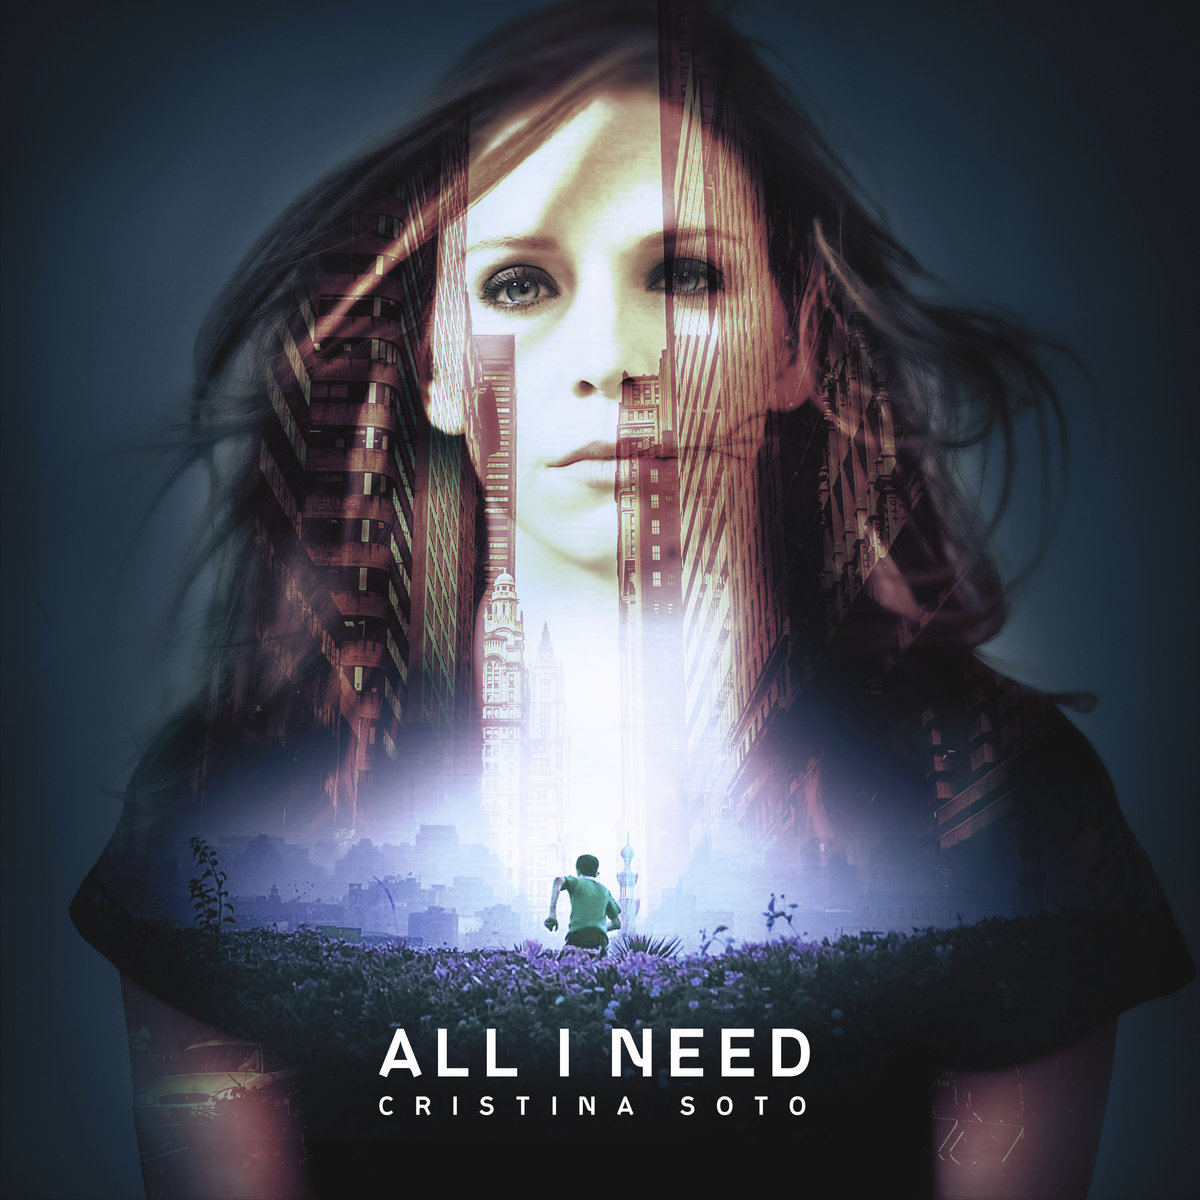 Cristina Soto & Gold VHS - Where the Heart Is @ 'All I Need' album (Austin)